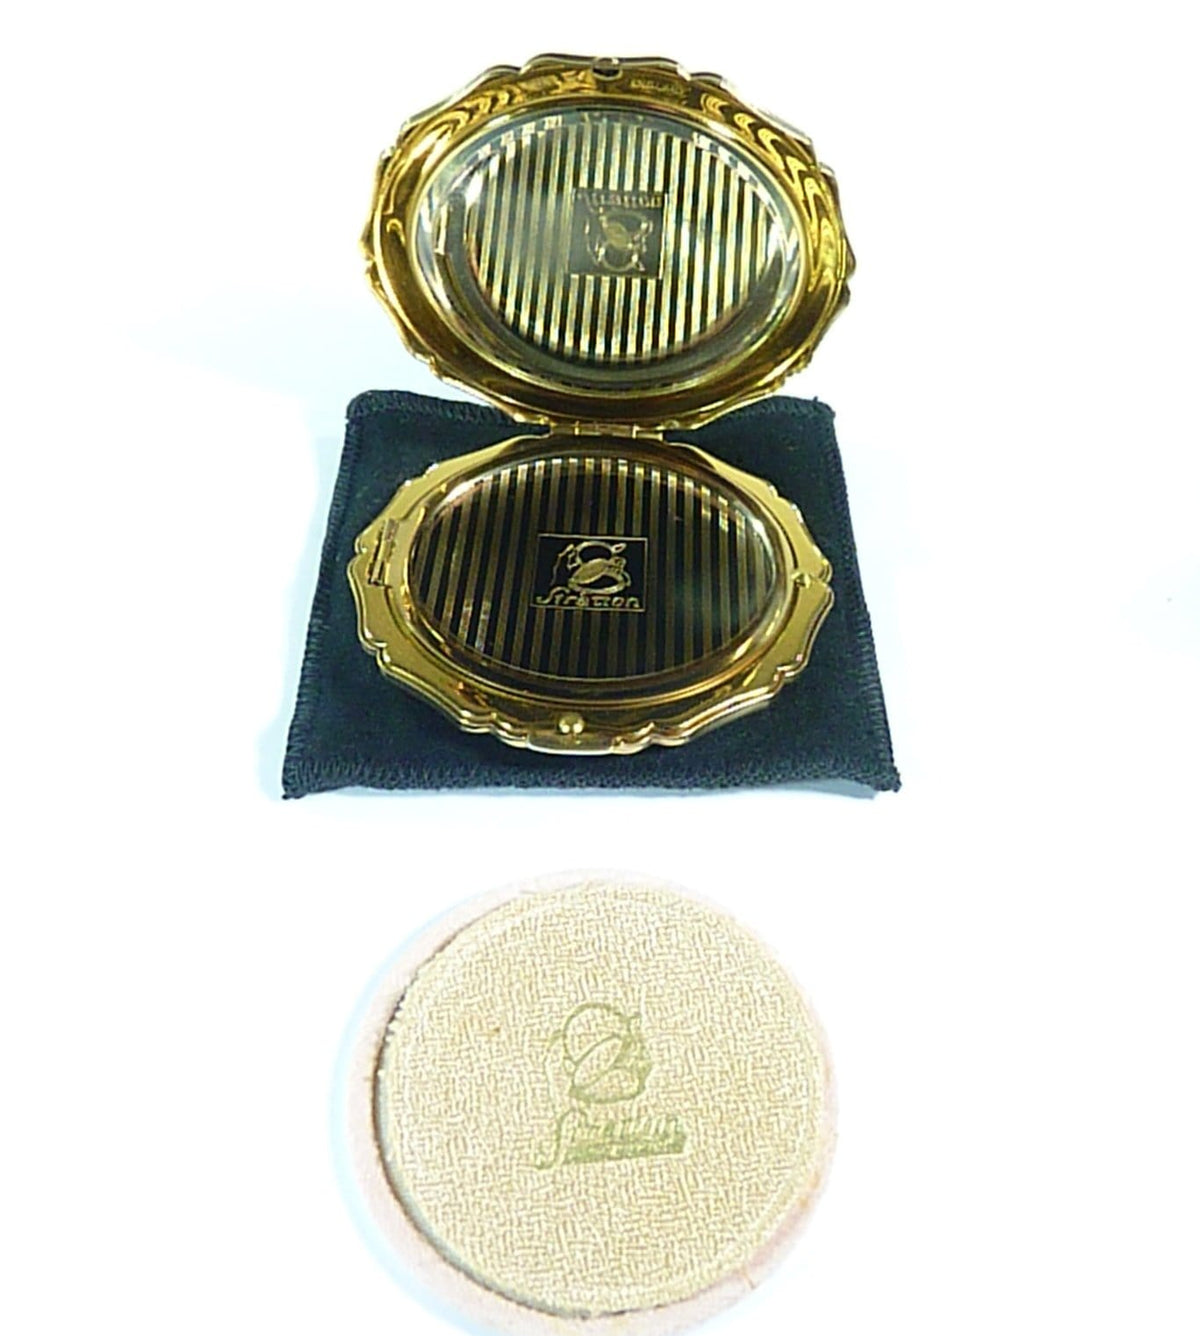 boxed complete Stratton compact vintage